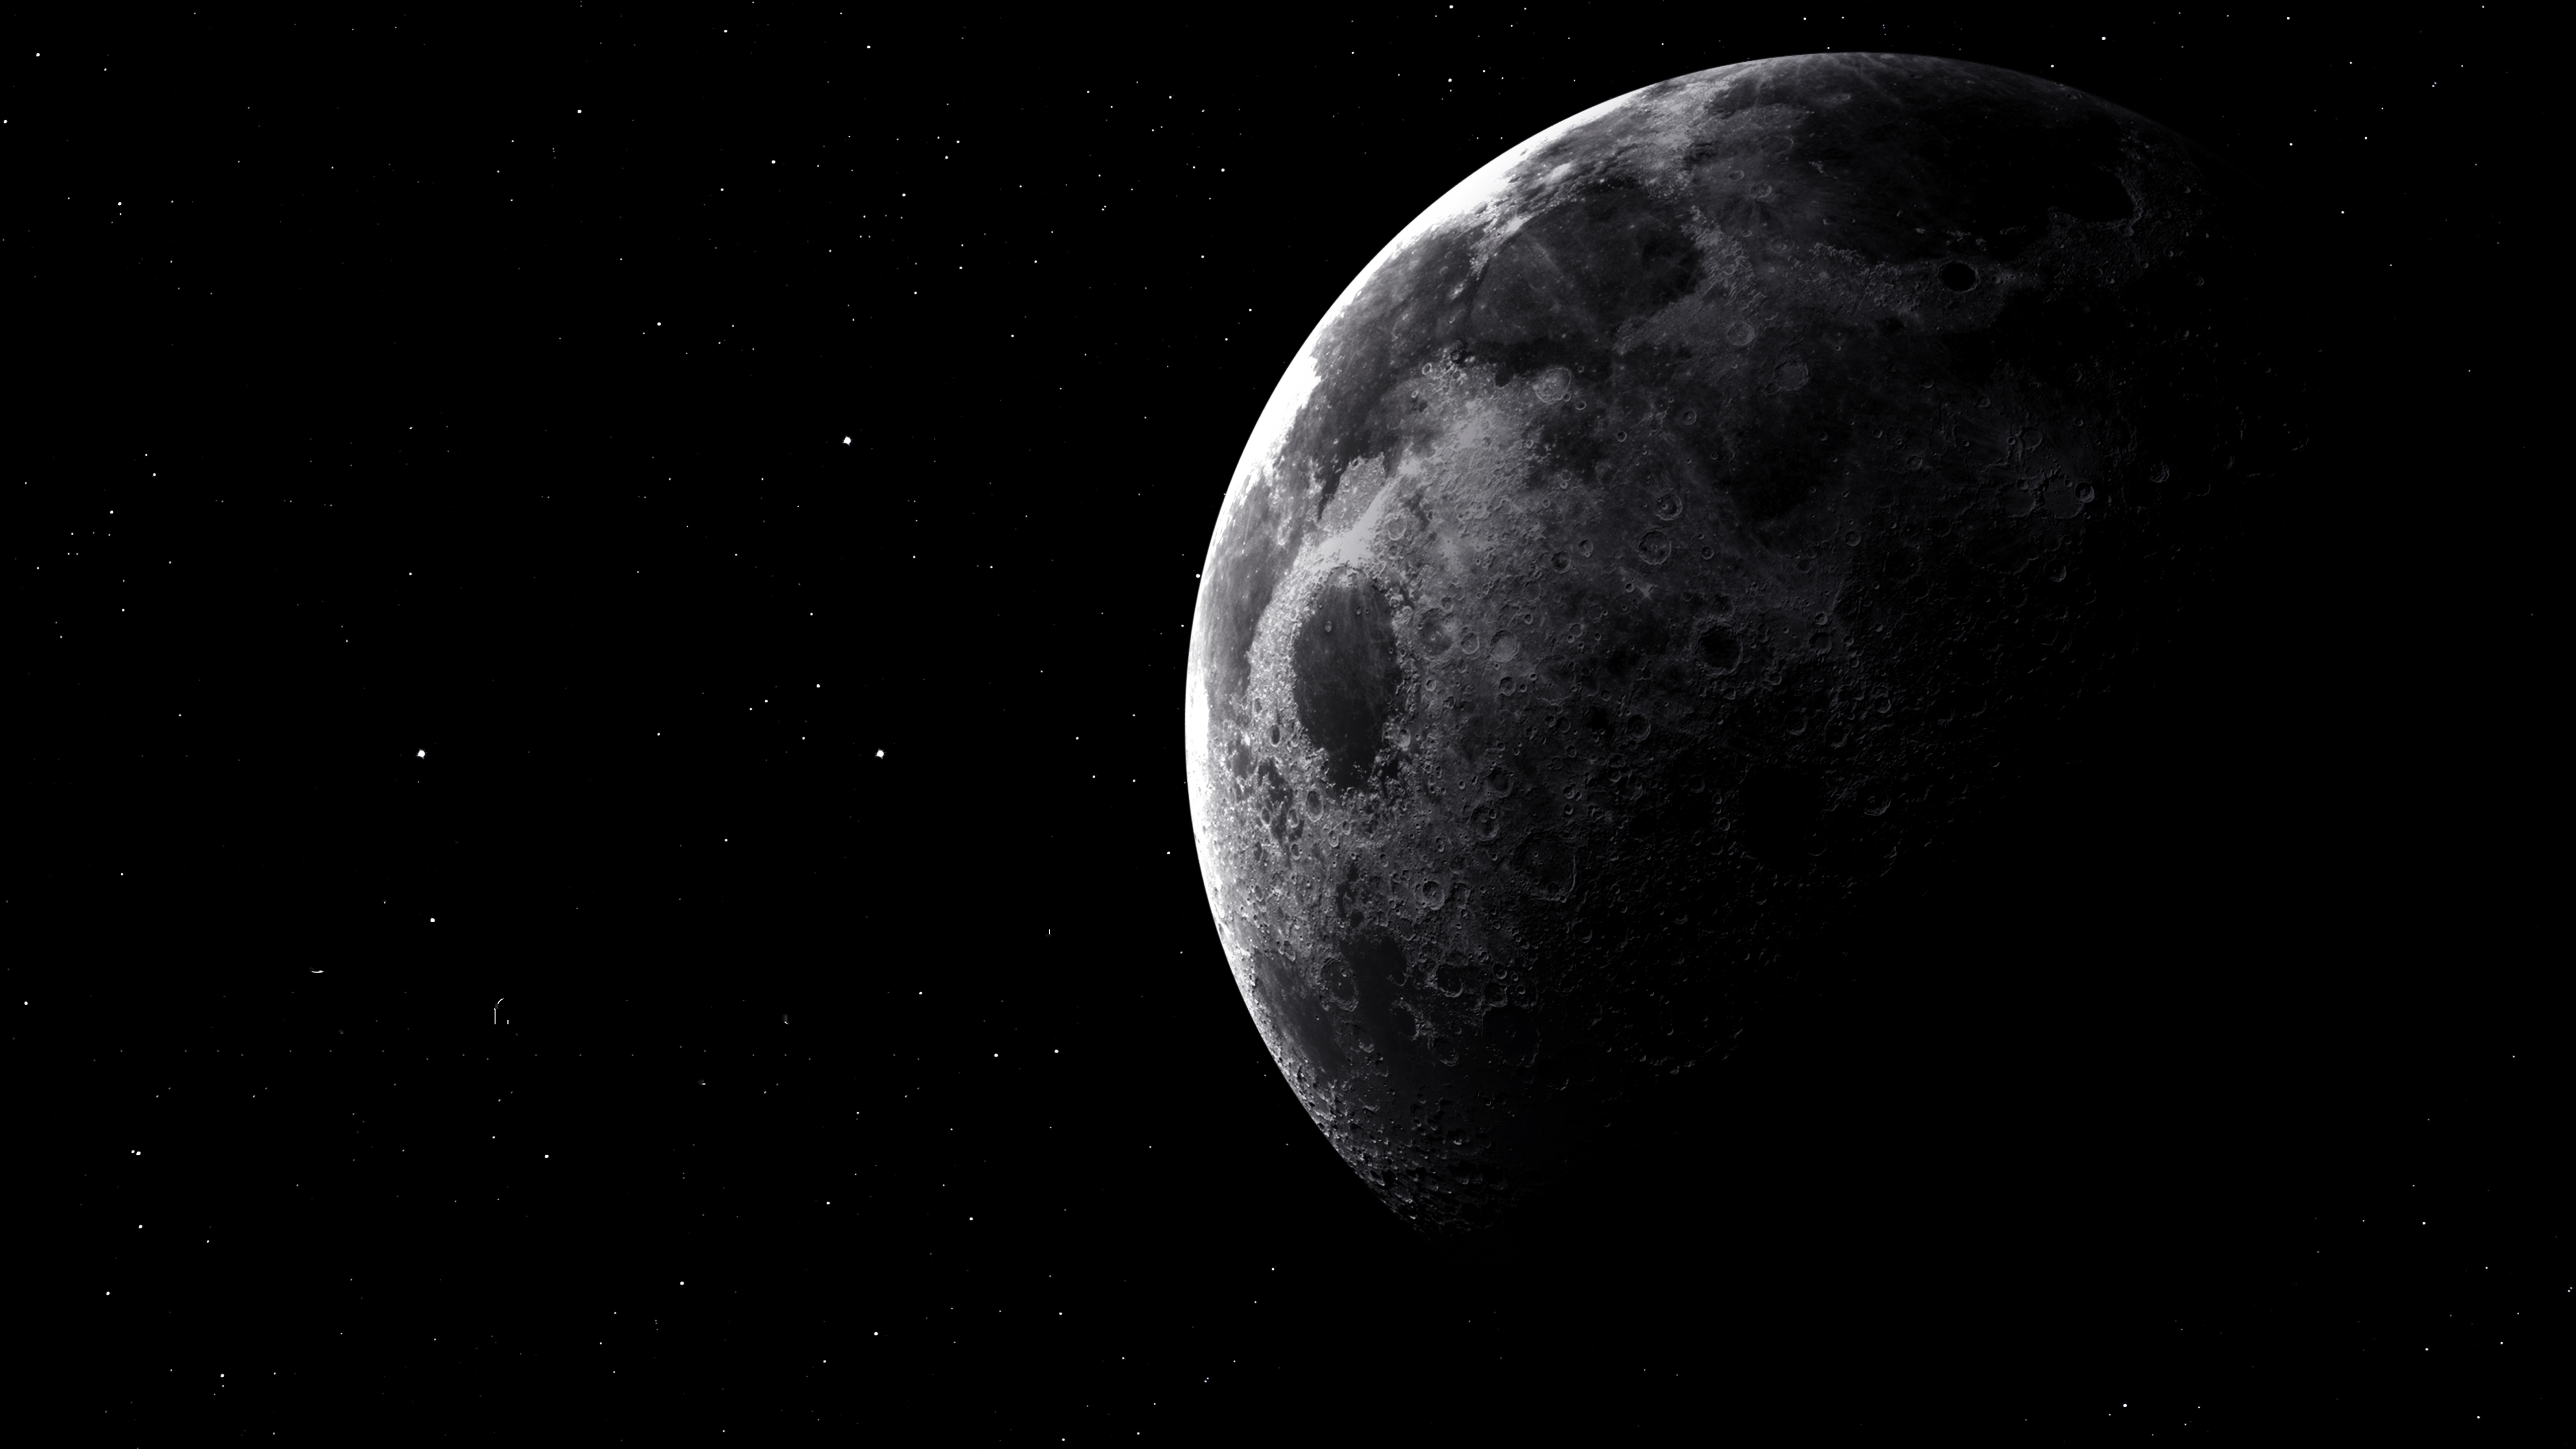 Moon 5k Hd World 4k Wallpapers Images Backgrounds